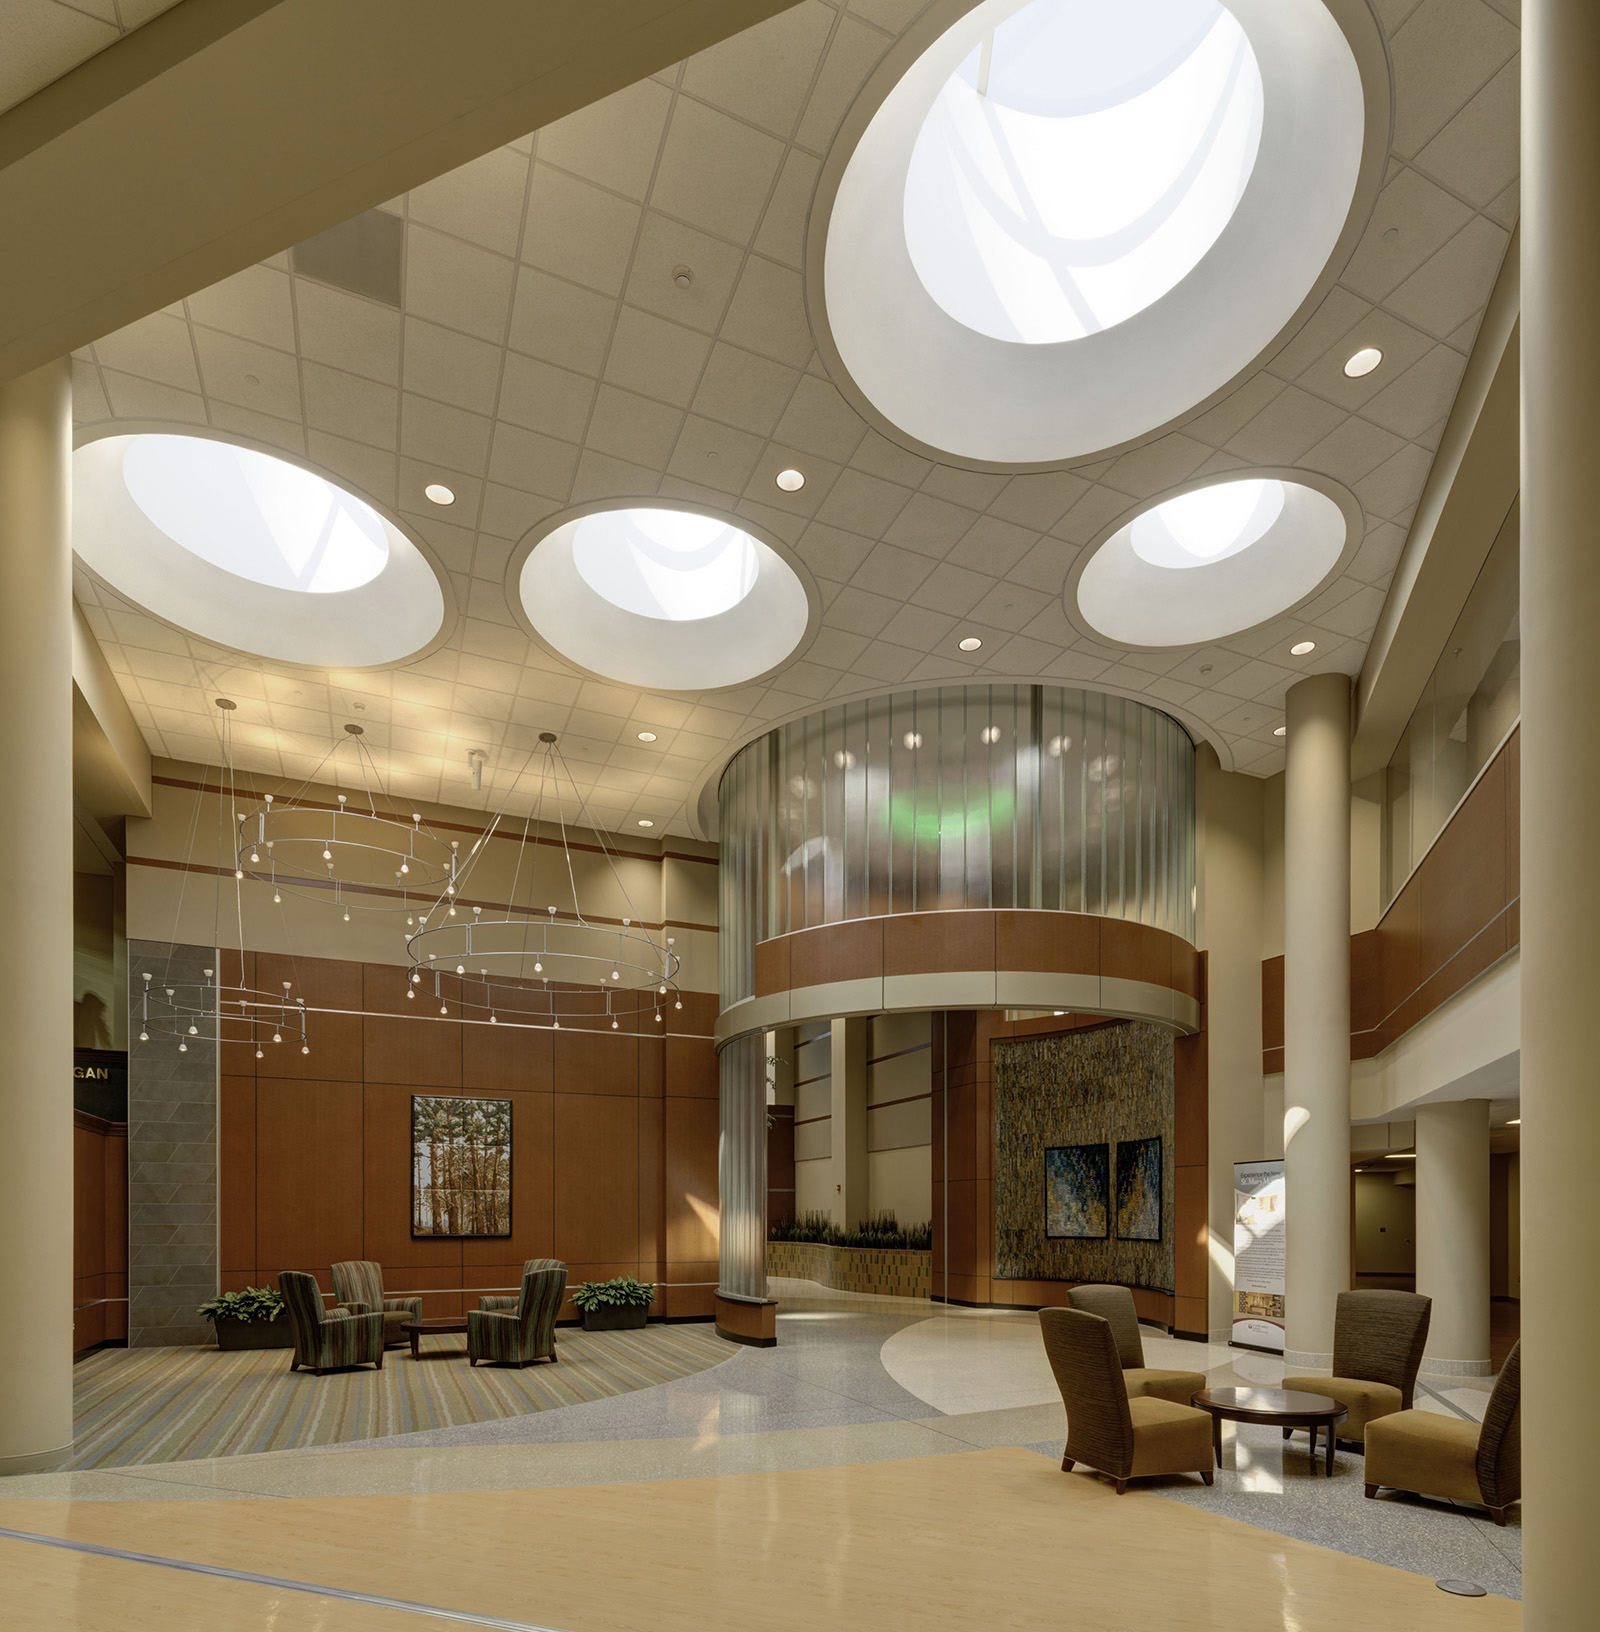 st-mary-mercy-livonia-lobby